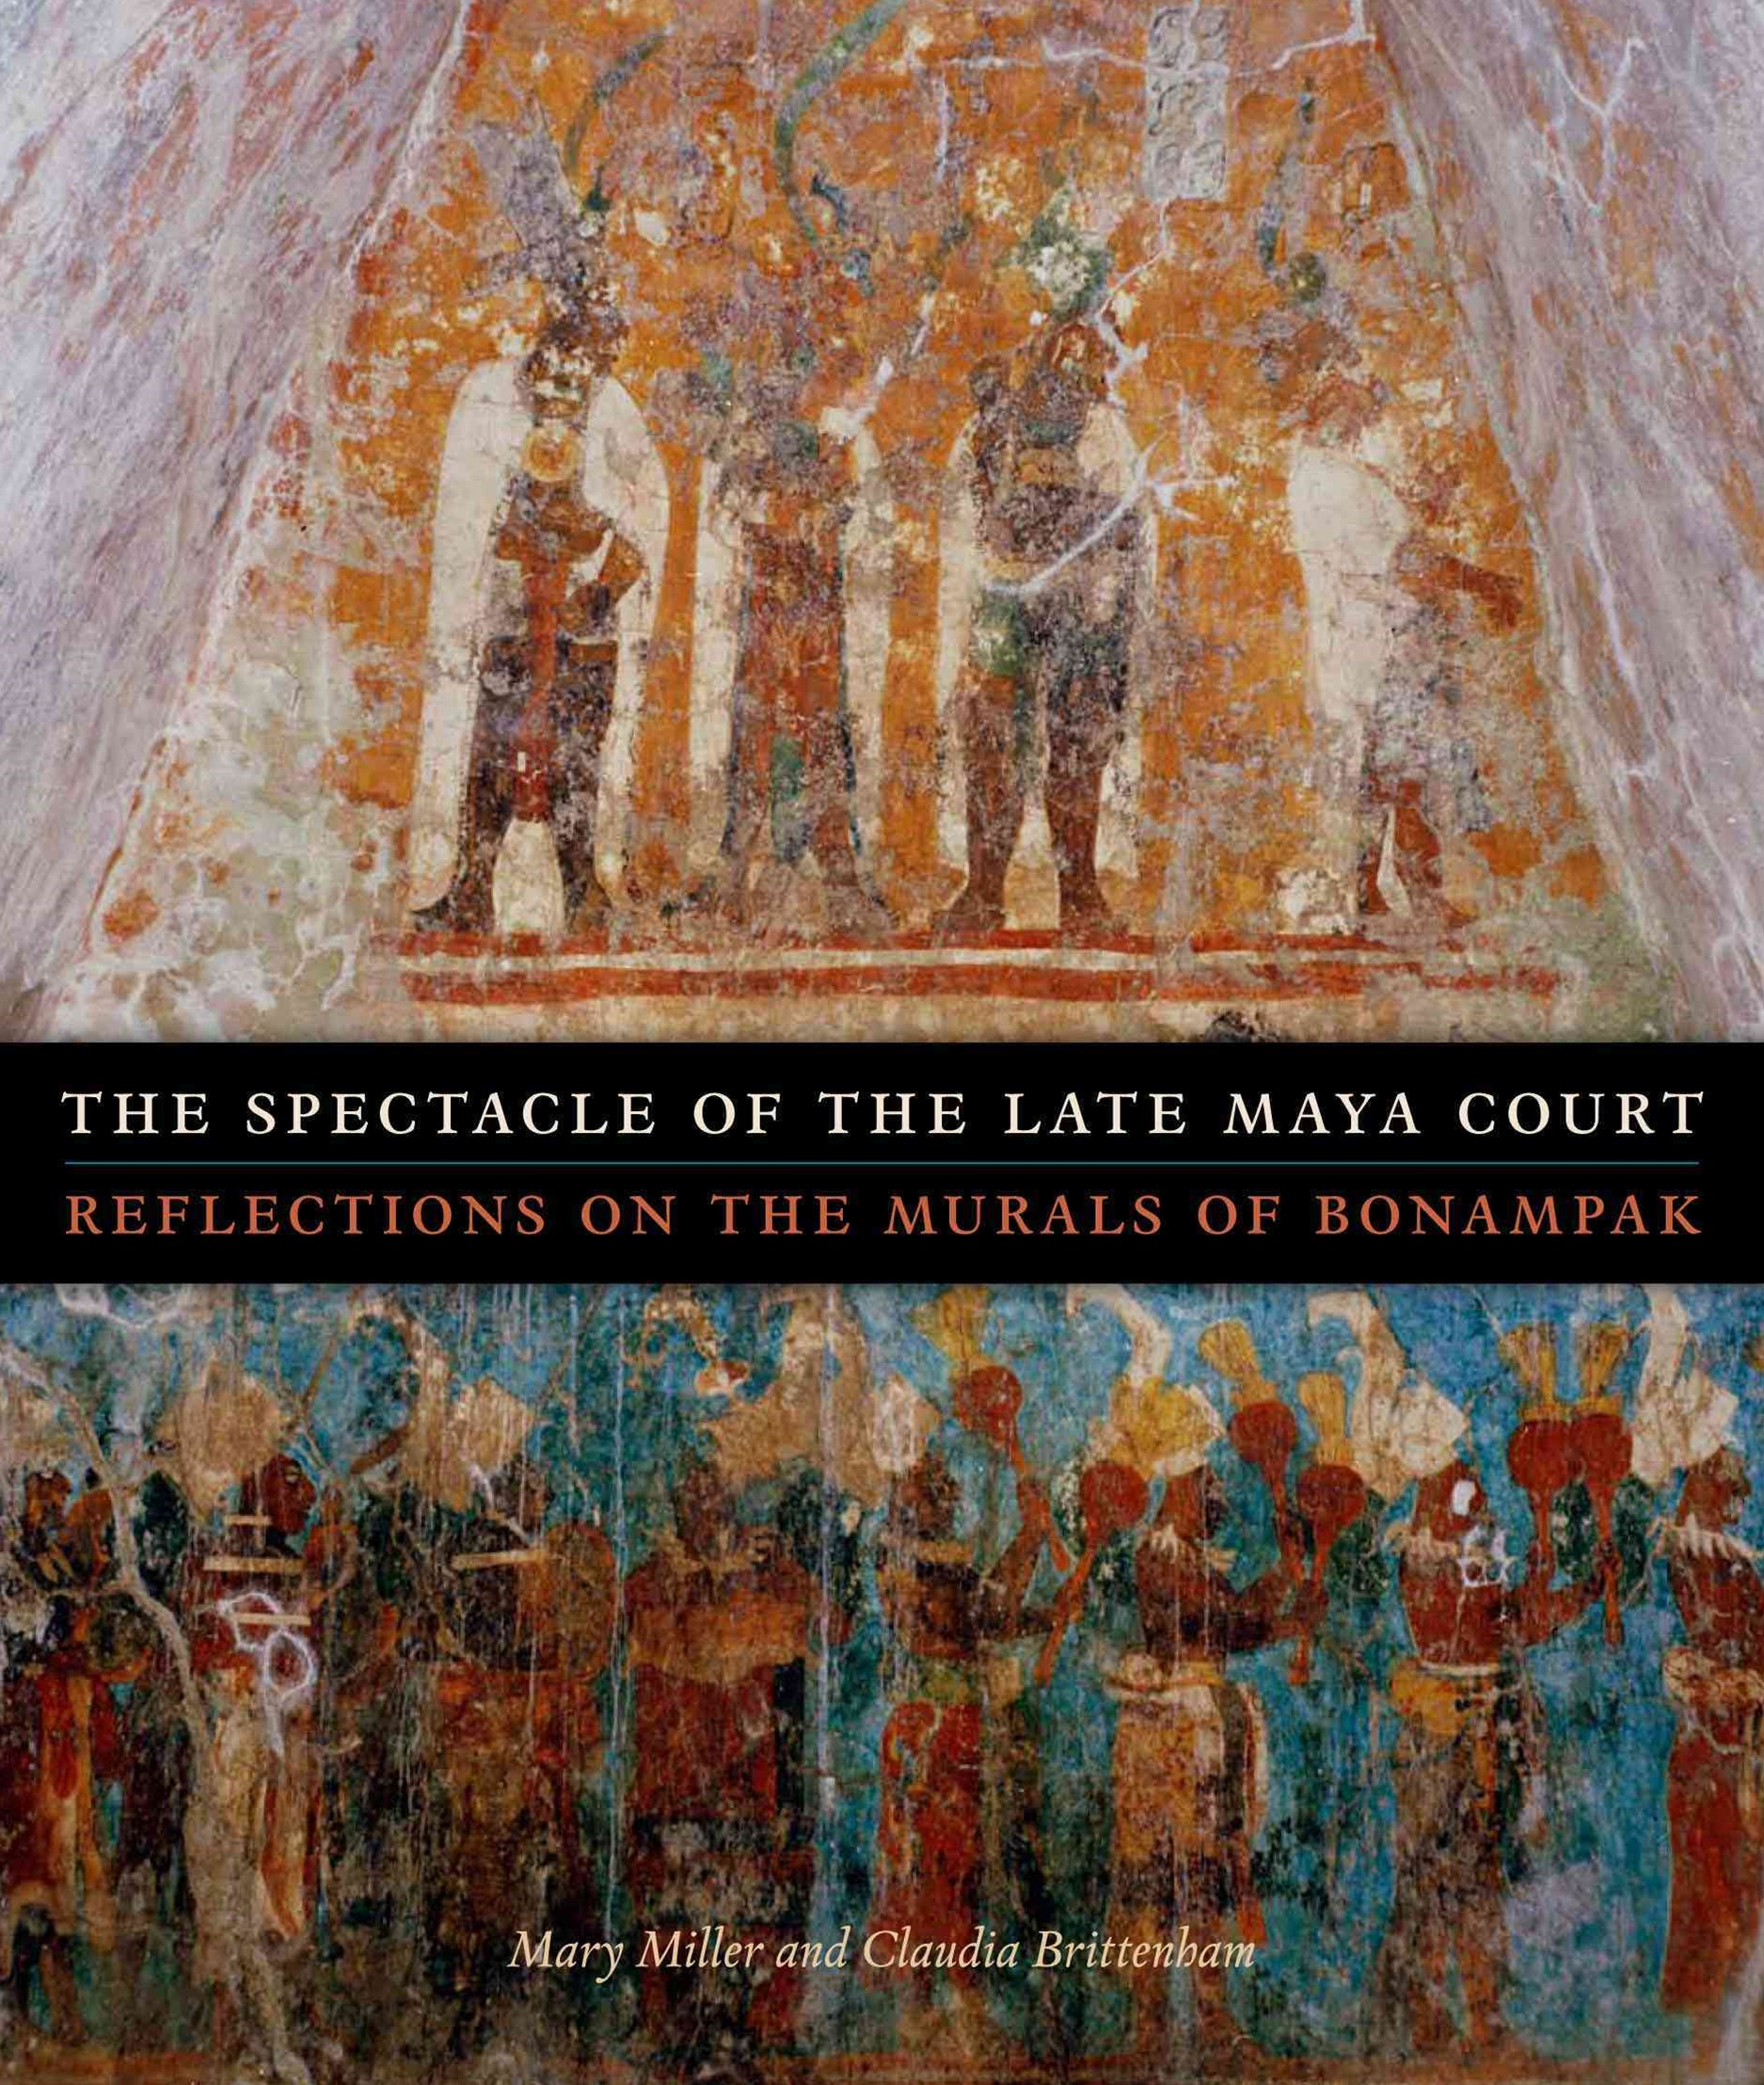 The Spectacle of the Late Maya Court